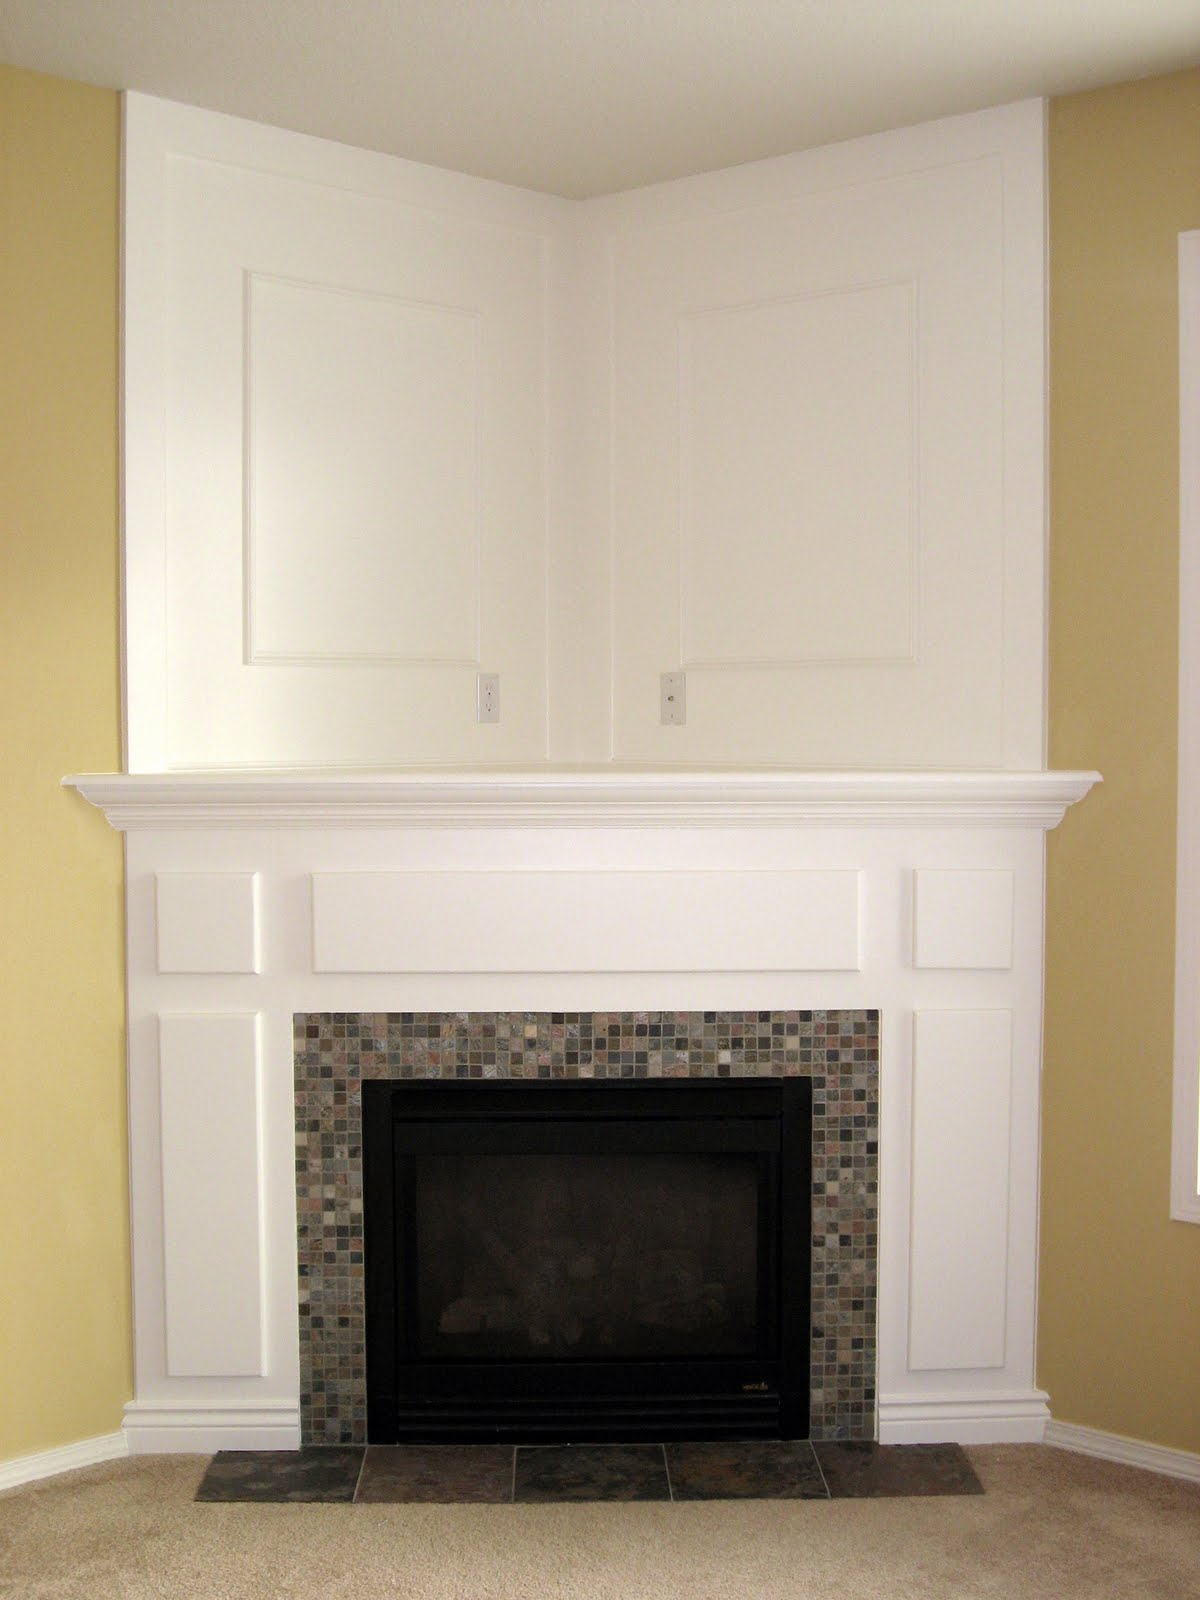 The dizzy house fireplace the reveal - Pictures of corner fireplaces ...